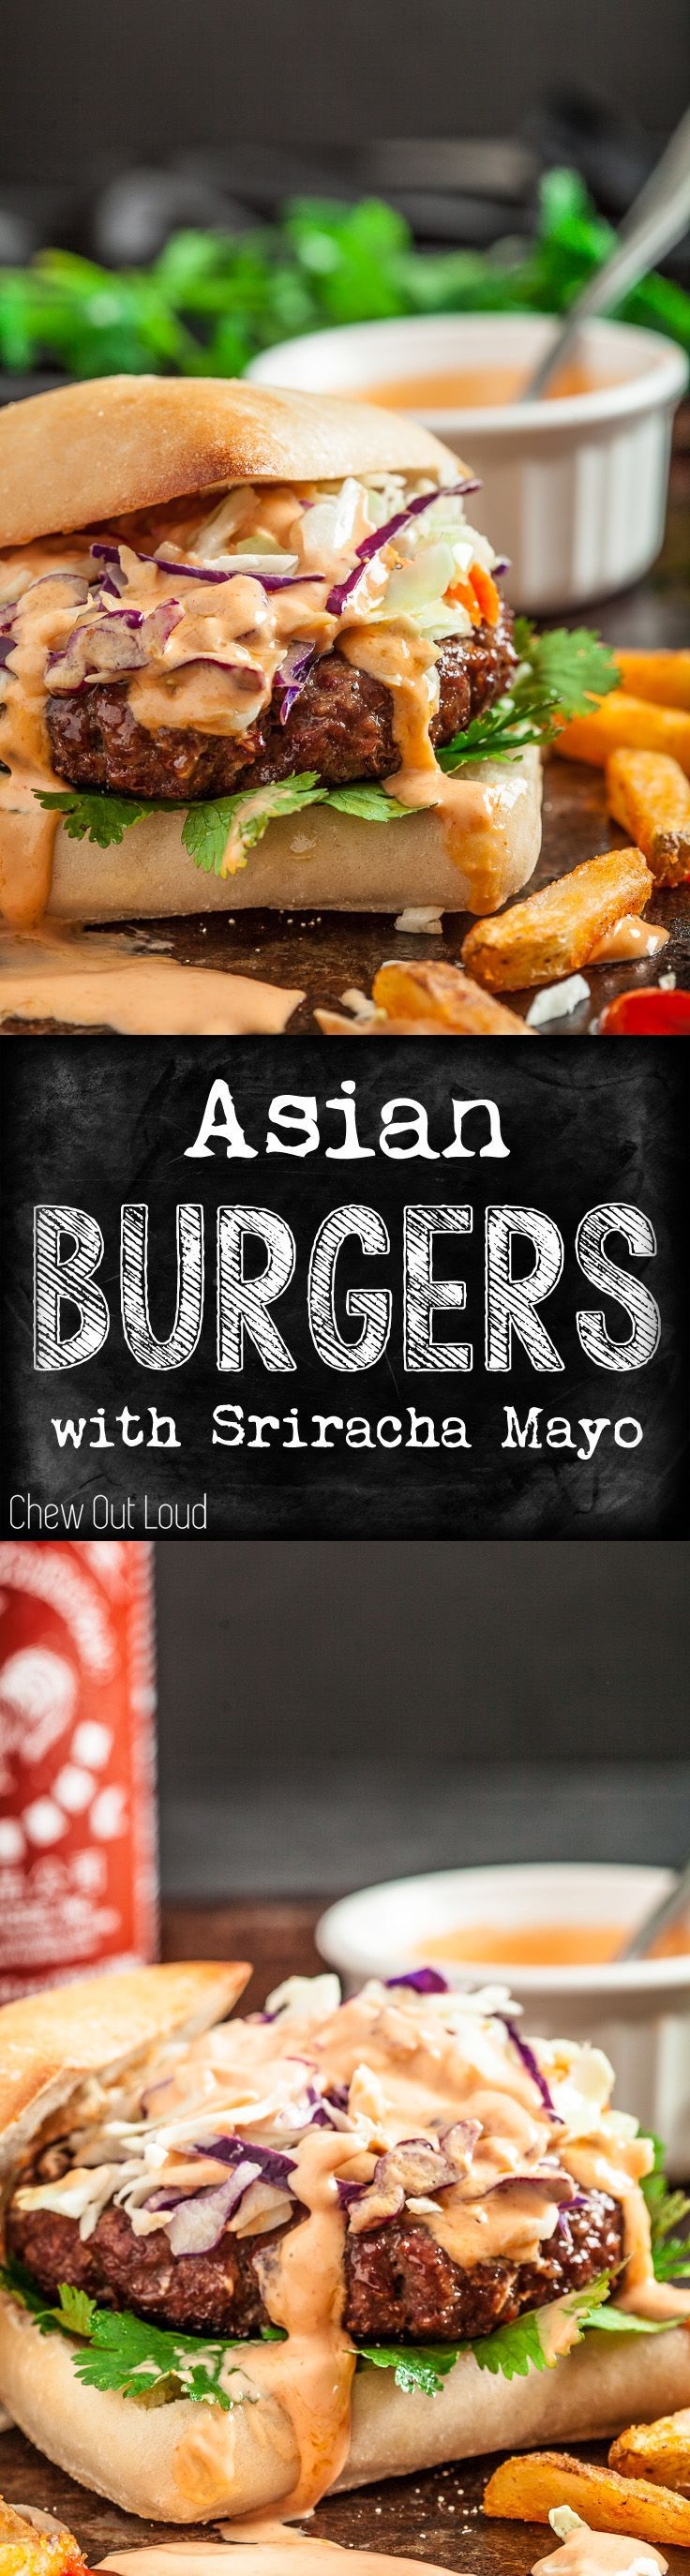 Asian Burgers with Sriracha Mayo - One of the BEST burgers that'll ever grace your grill. Juicy, tender, big bold flavors.